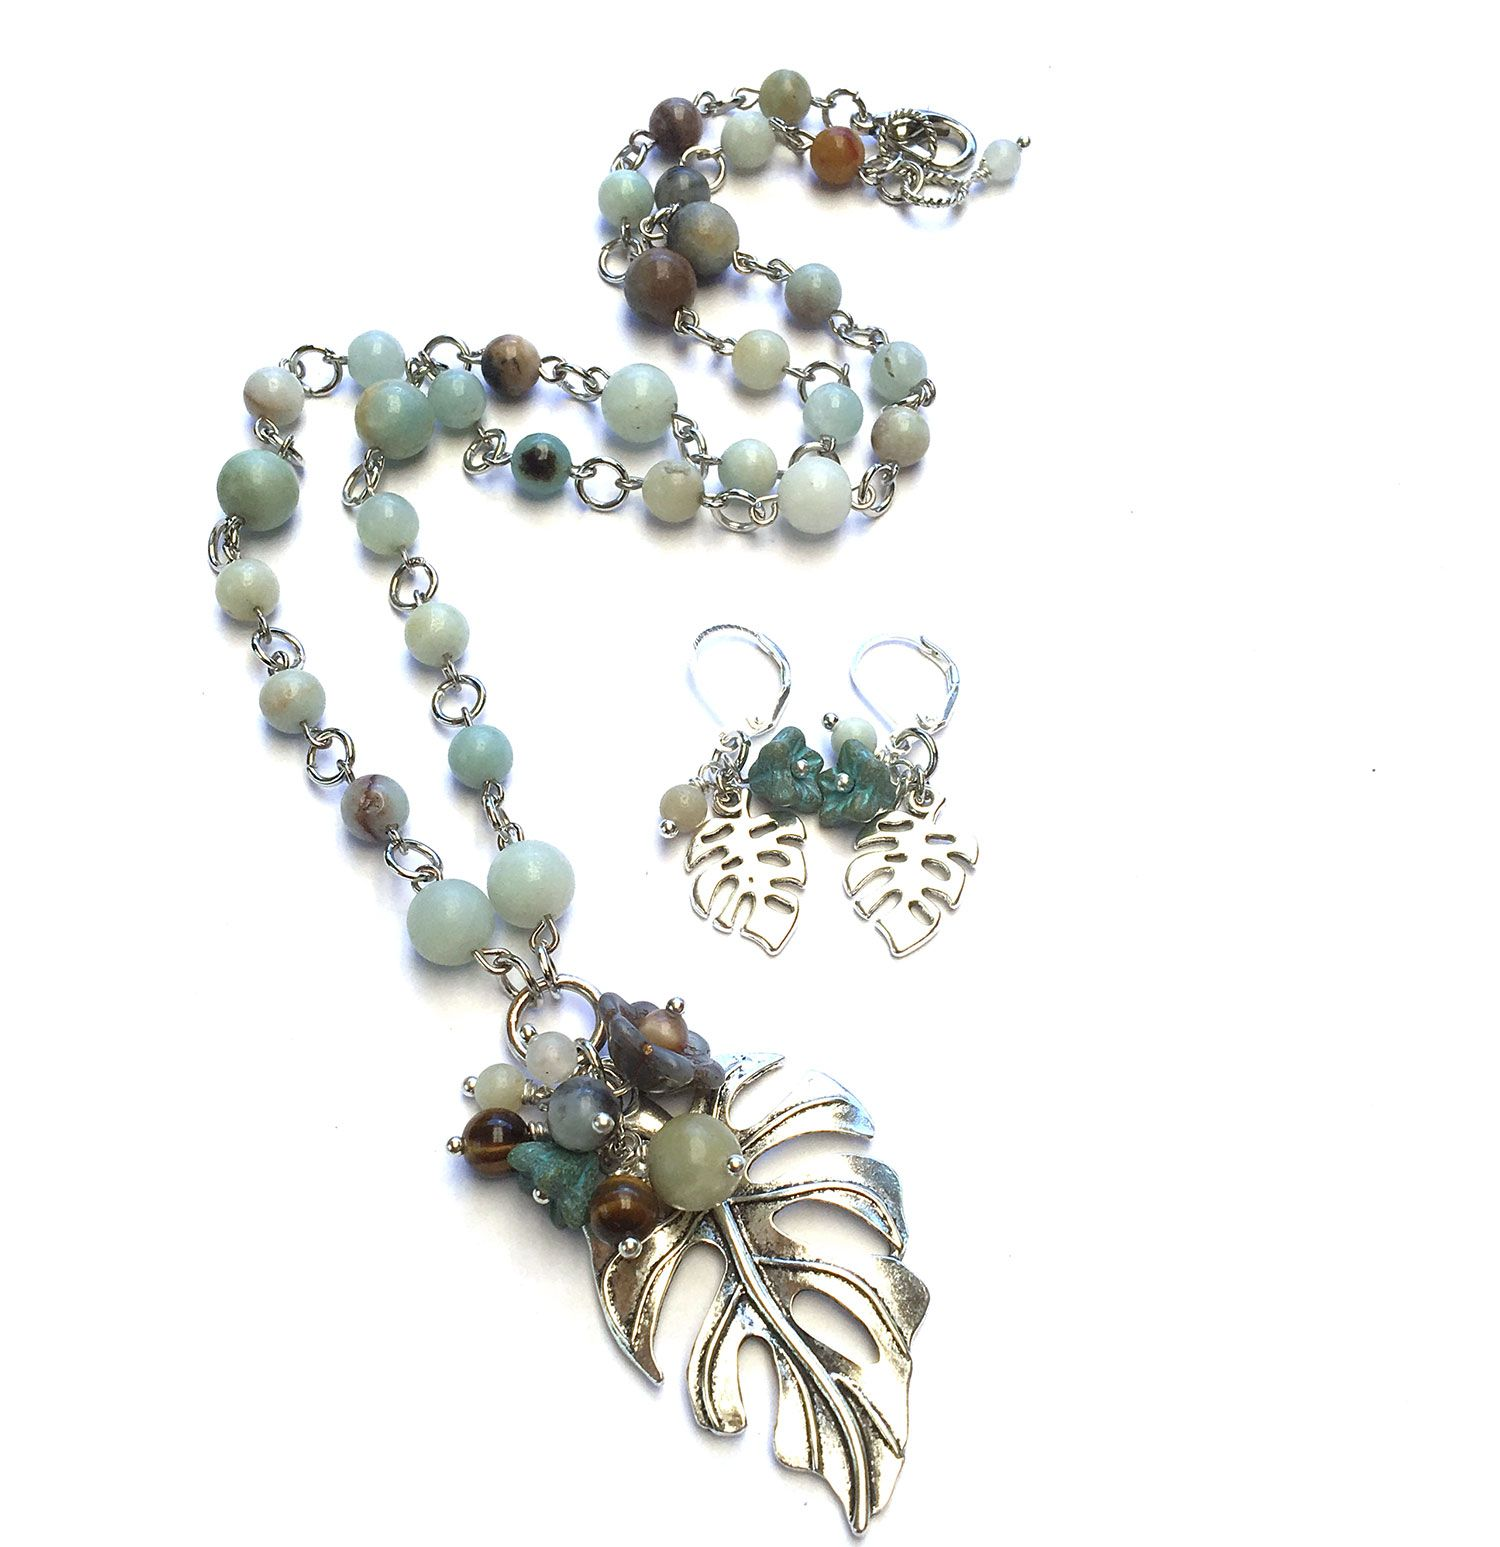 Kit is made up from the gemstone Amazonite with tiger eye